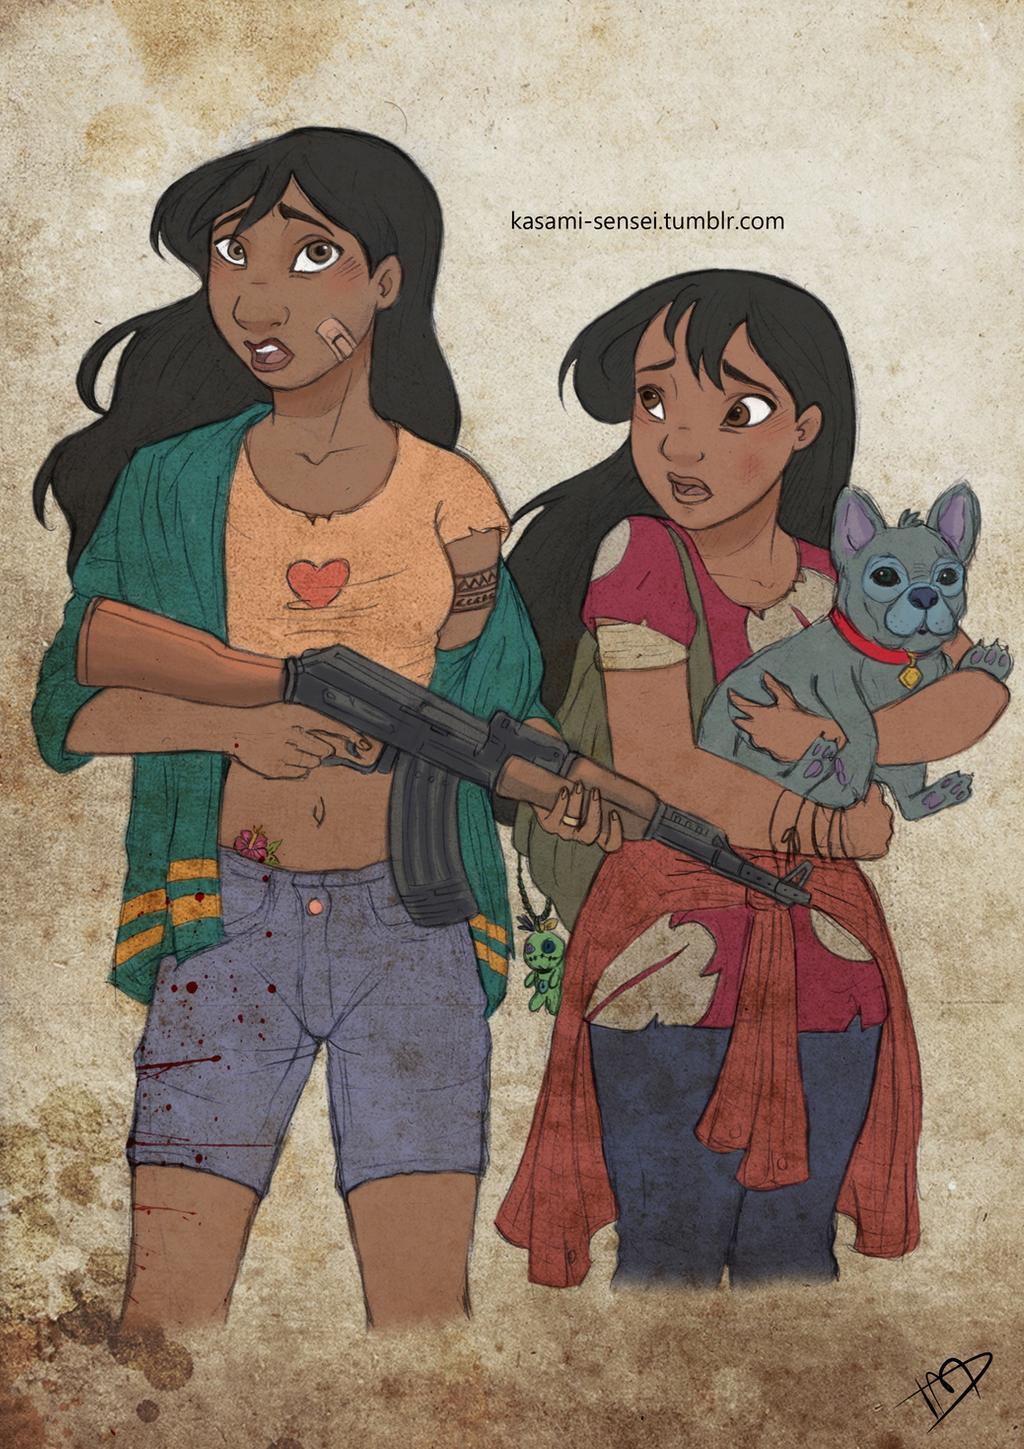 the_walking_disney___nani__lilo_and_stitch_by_kasami_sensei_d7os4zd-fullview.jpg